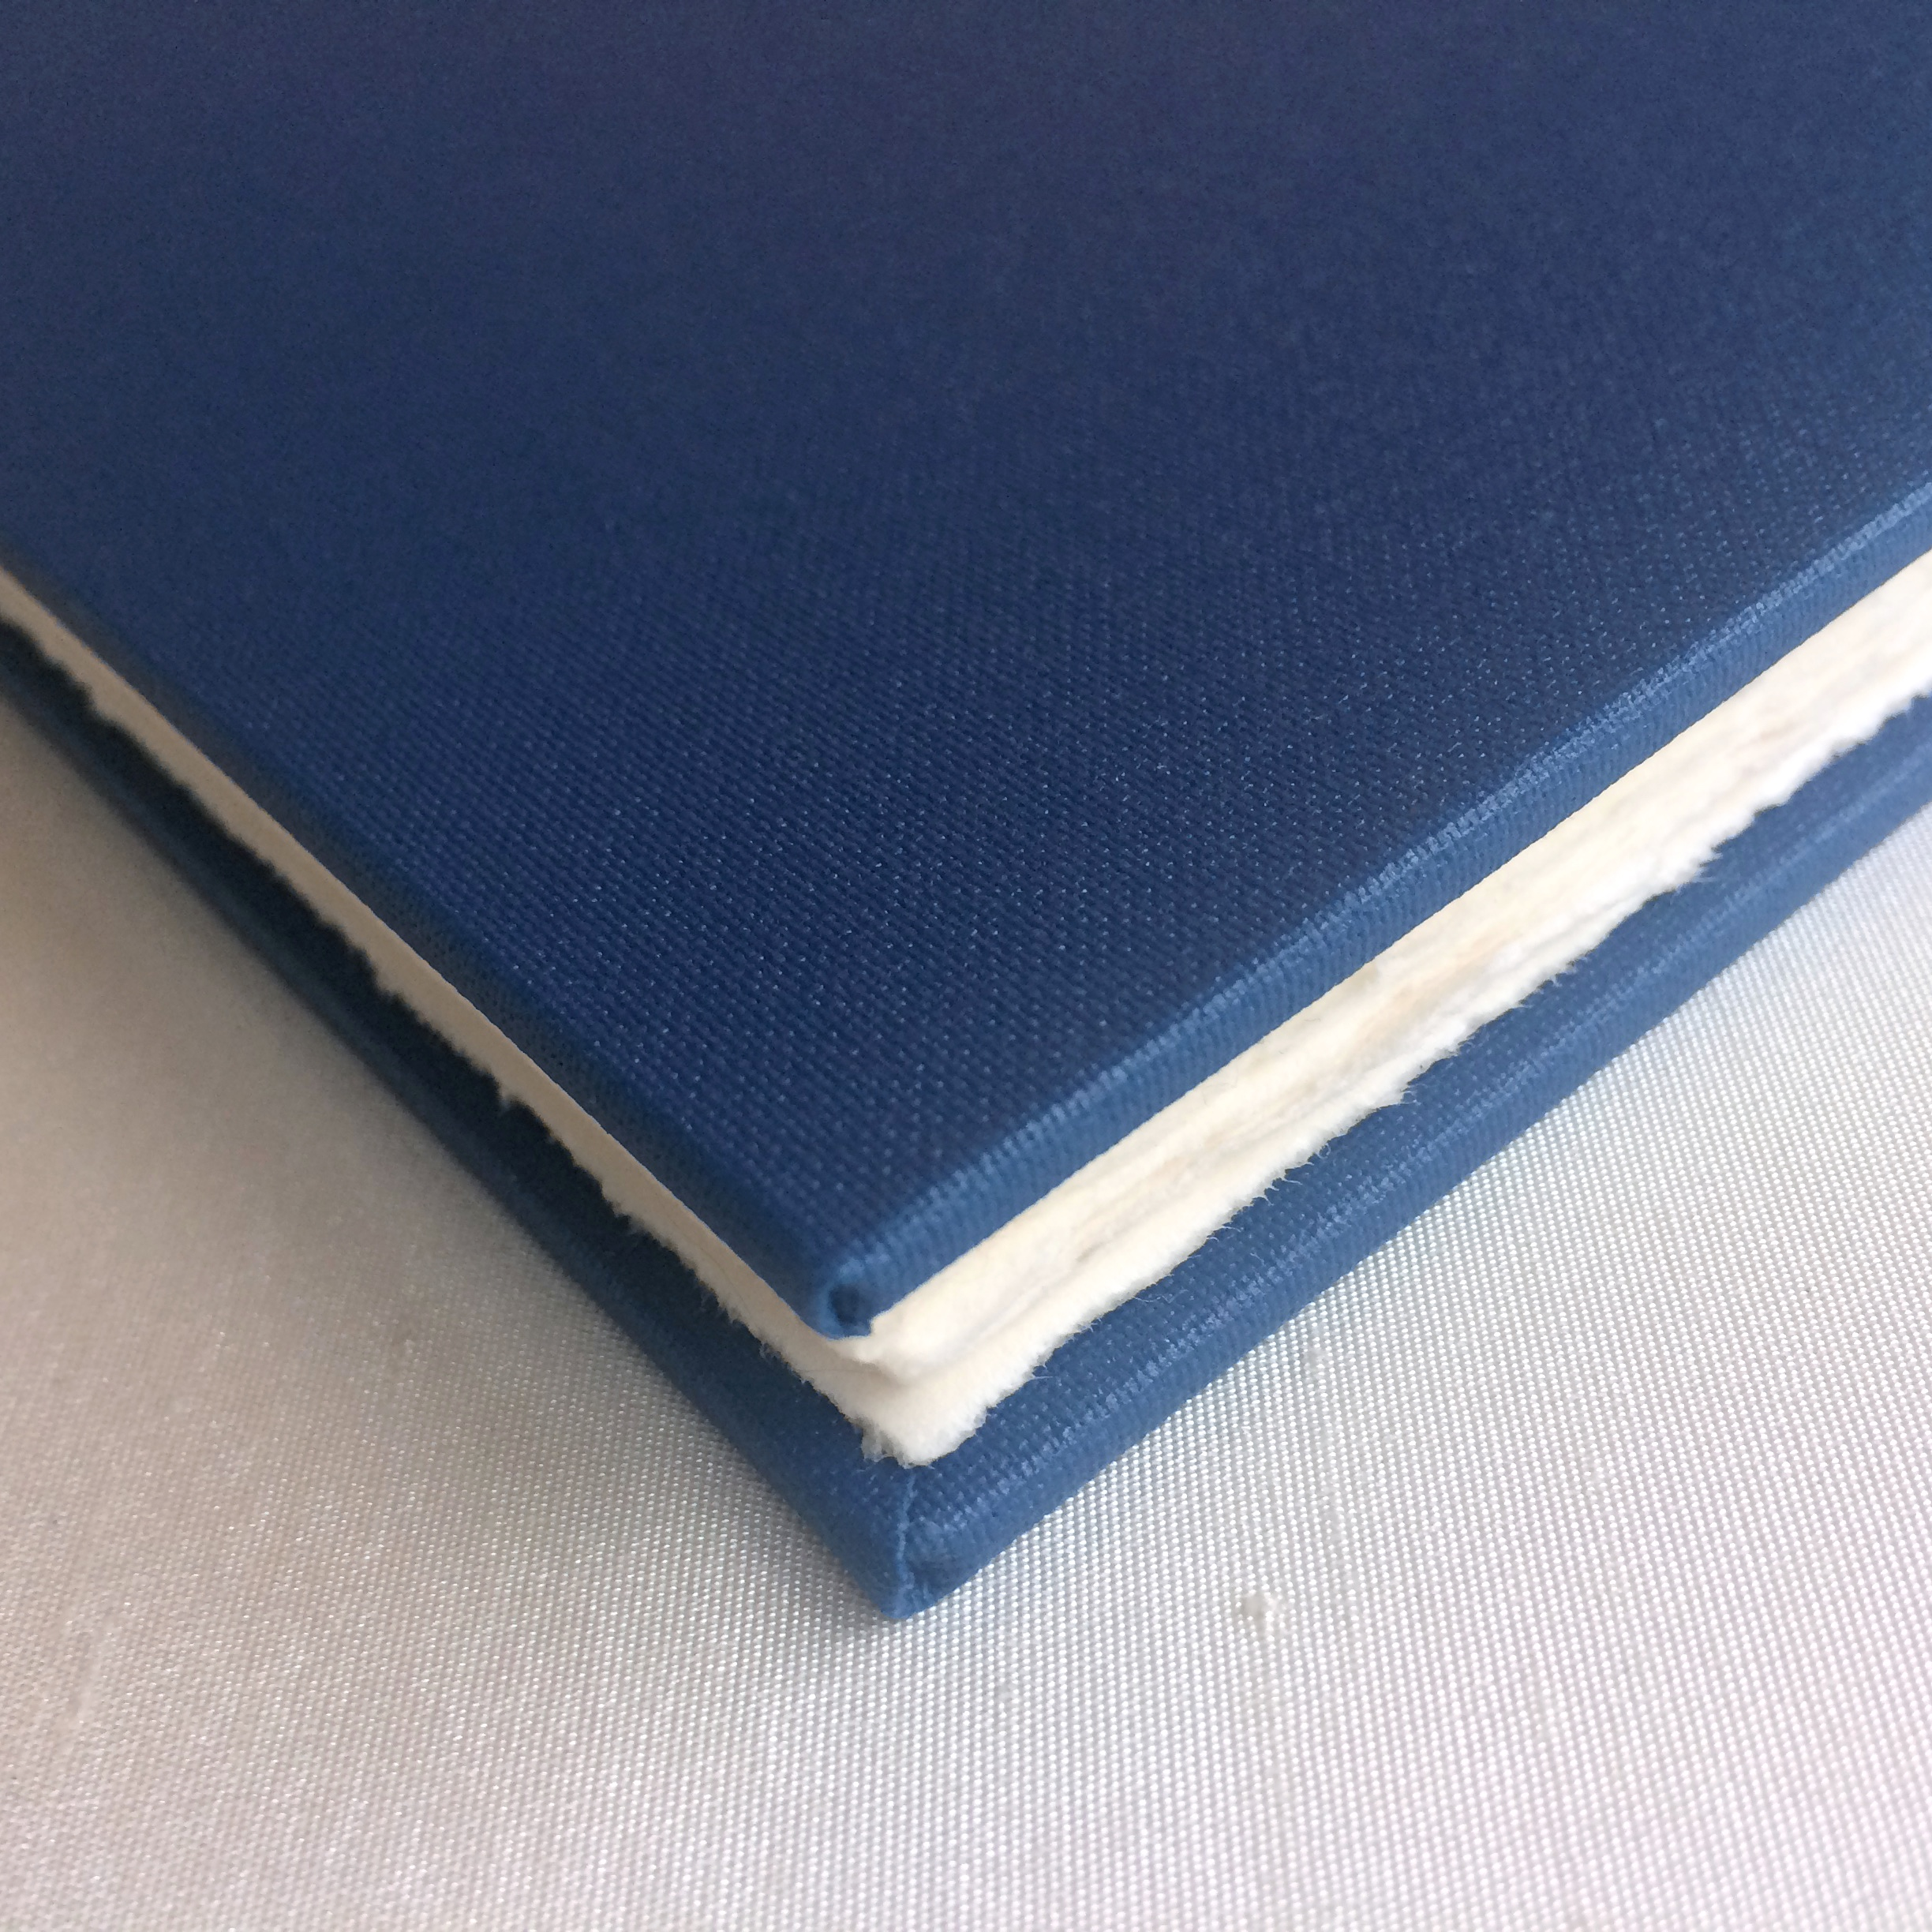 Navy book cloth on cover of unique artist's book